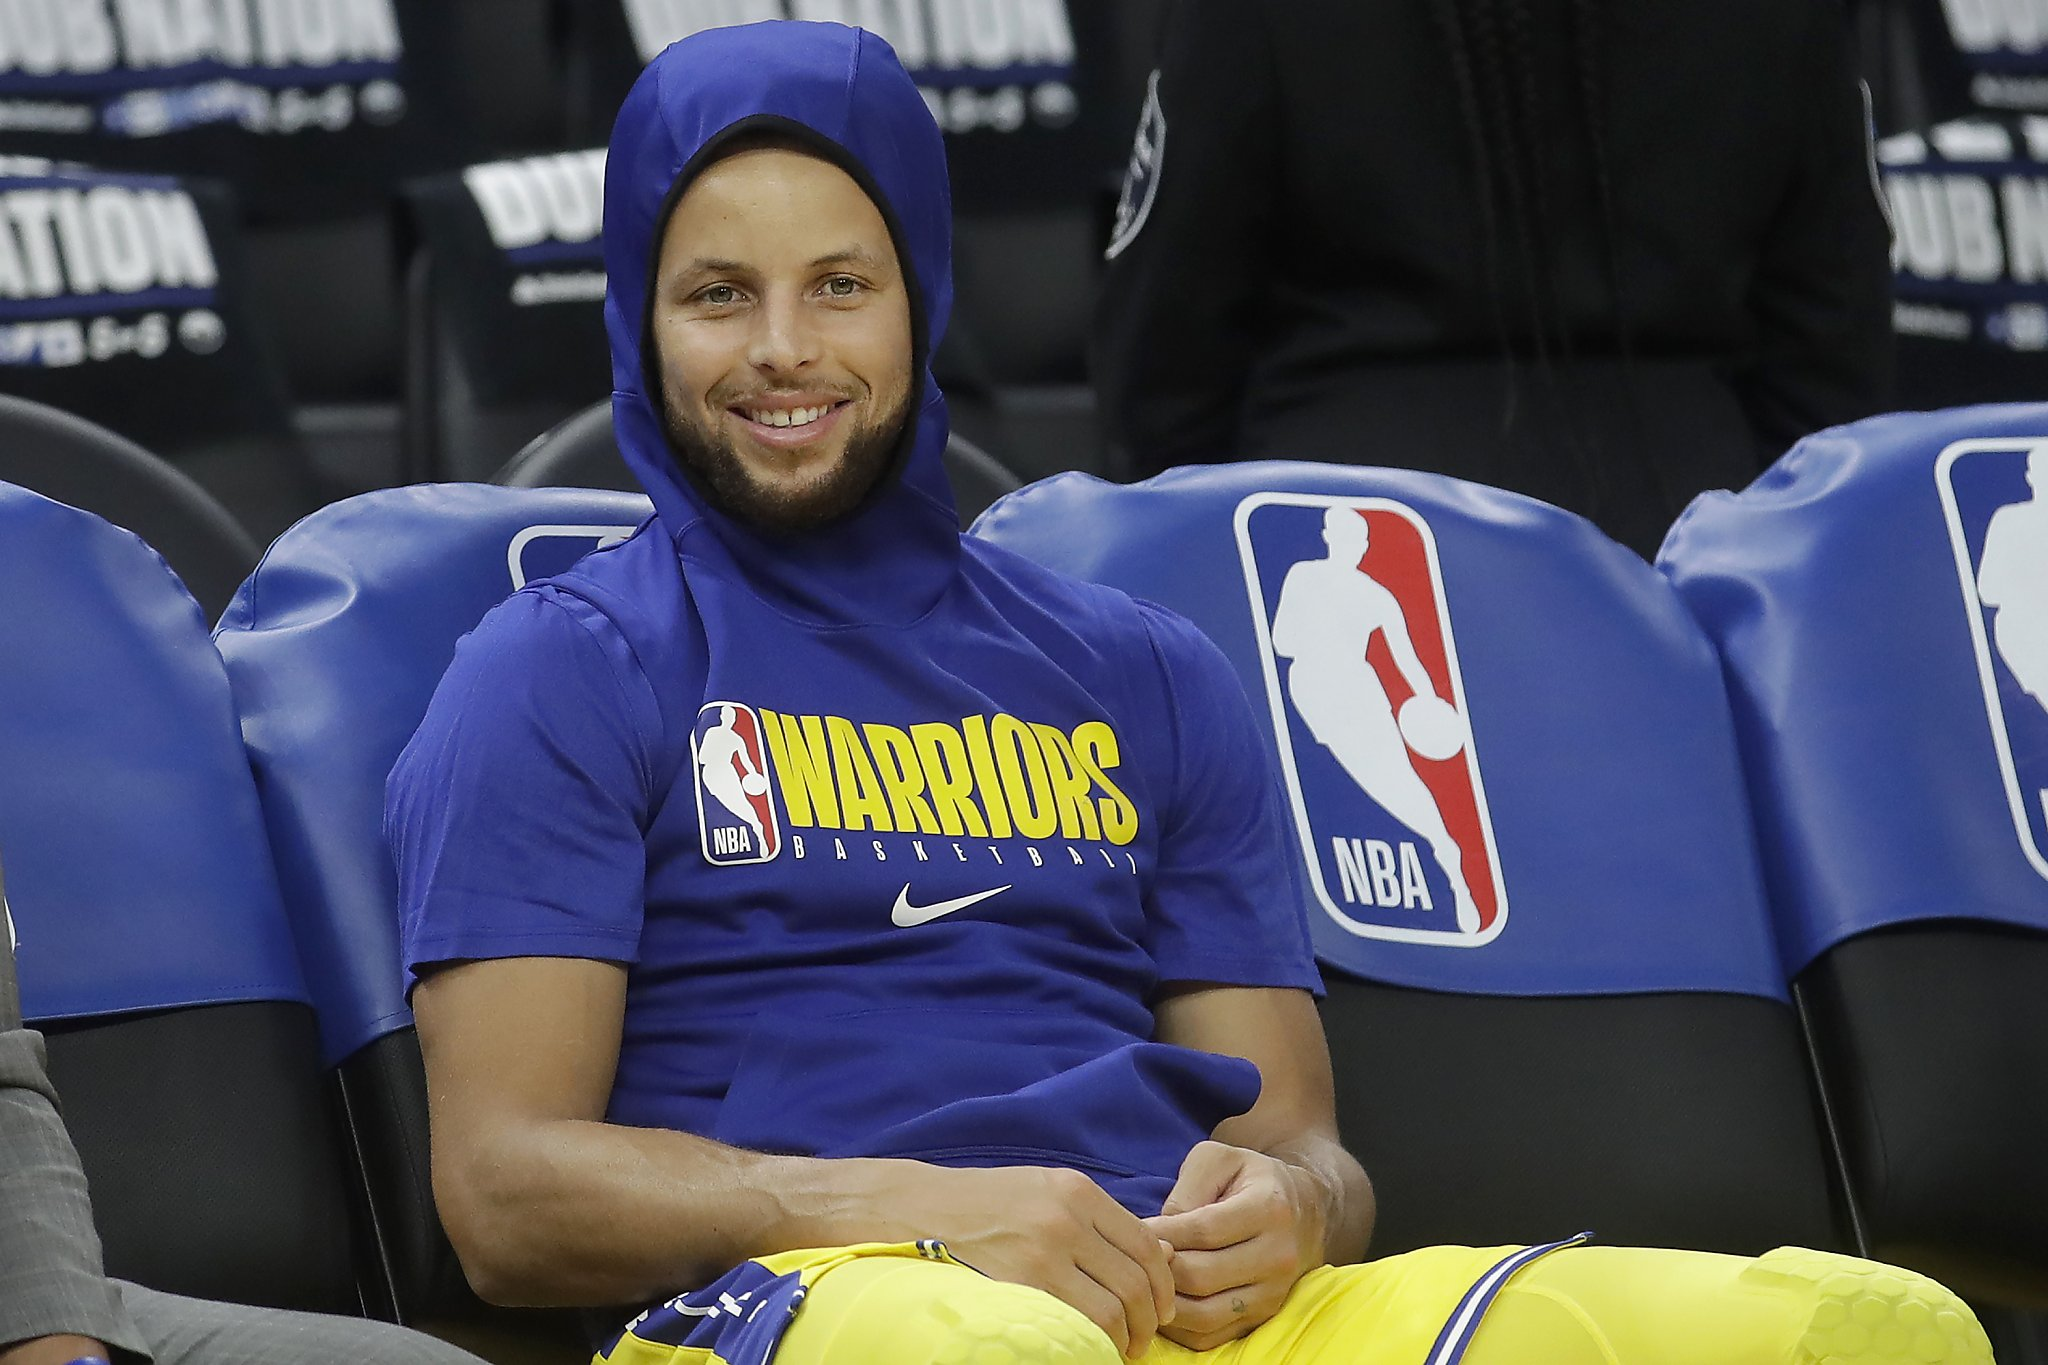 Warriors star Stephen Curry says he was the first player tested for the coronavirus